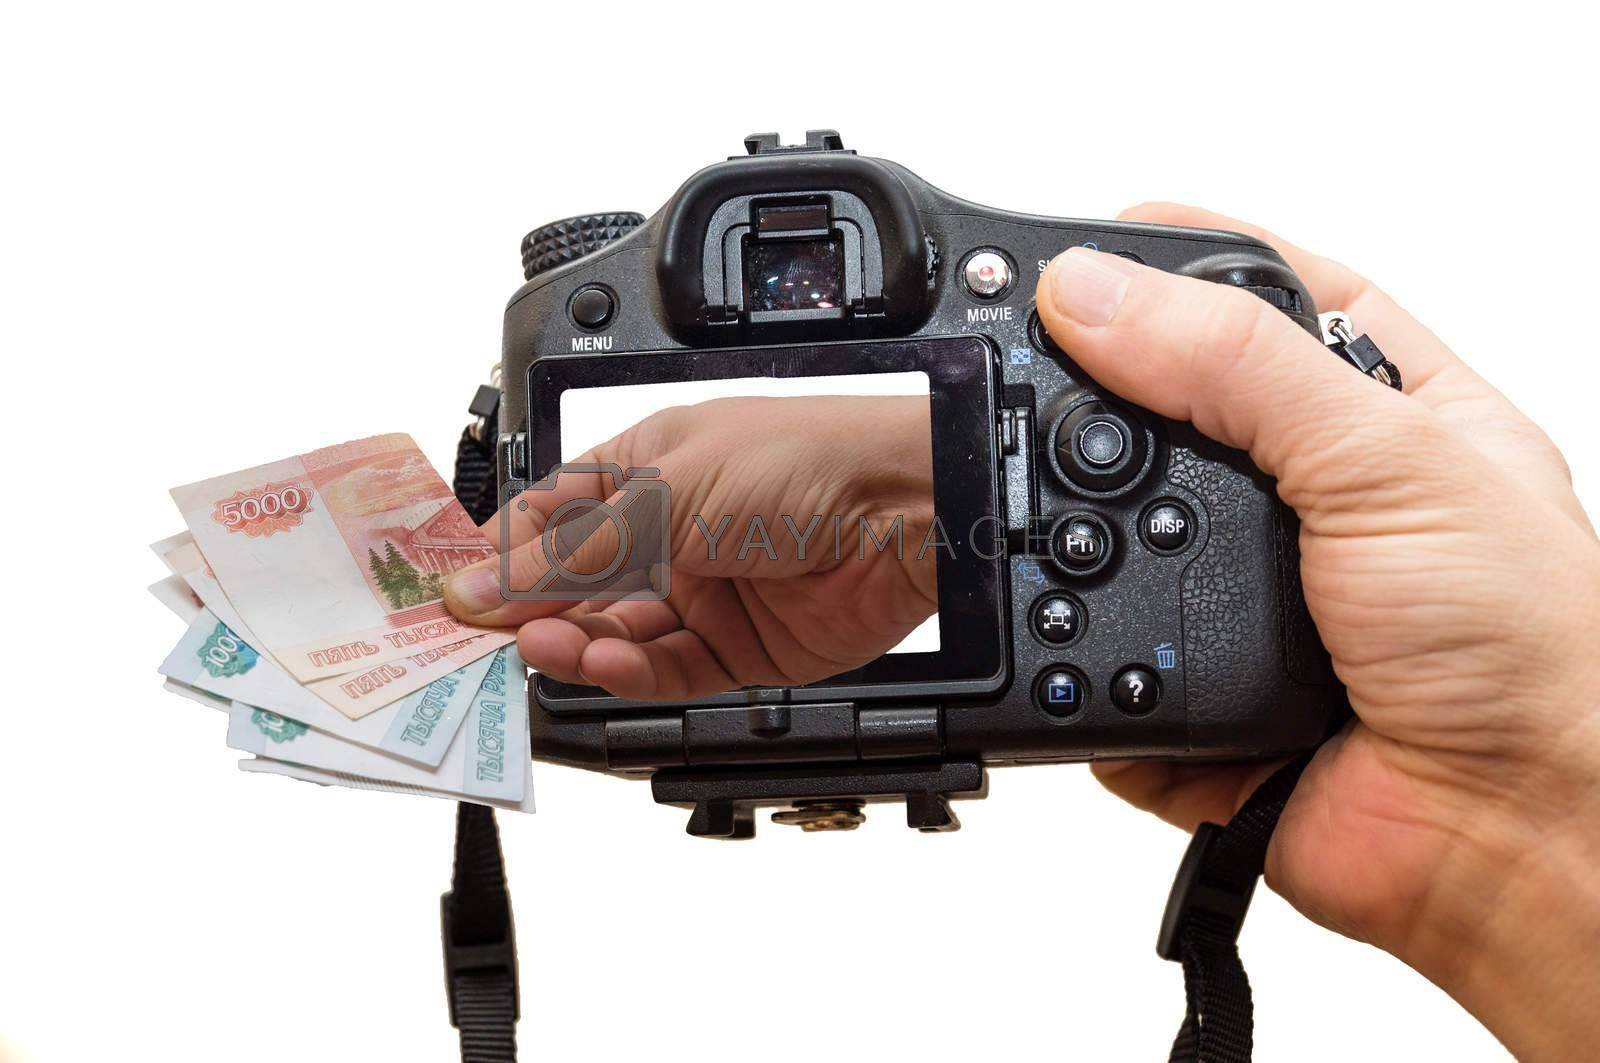 The photo depicts a camera and a hand full of money